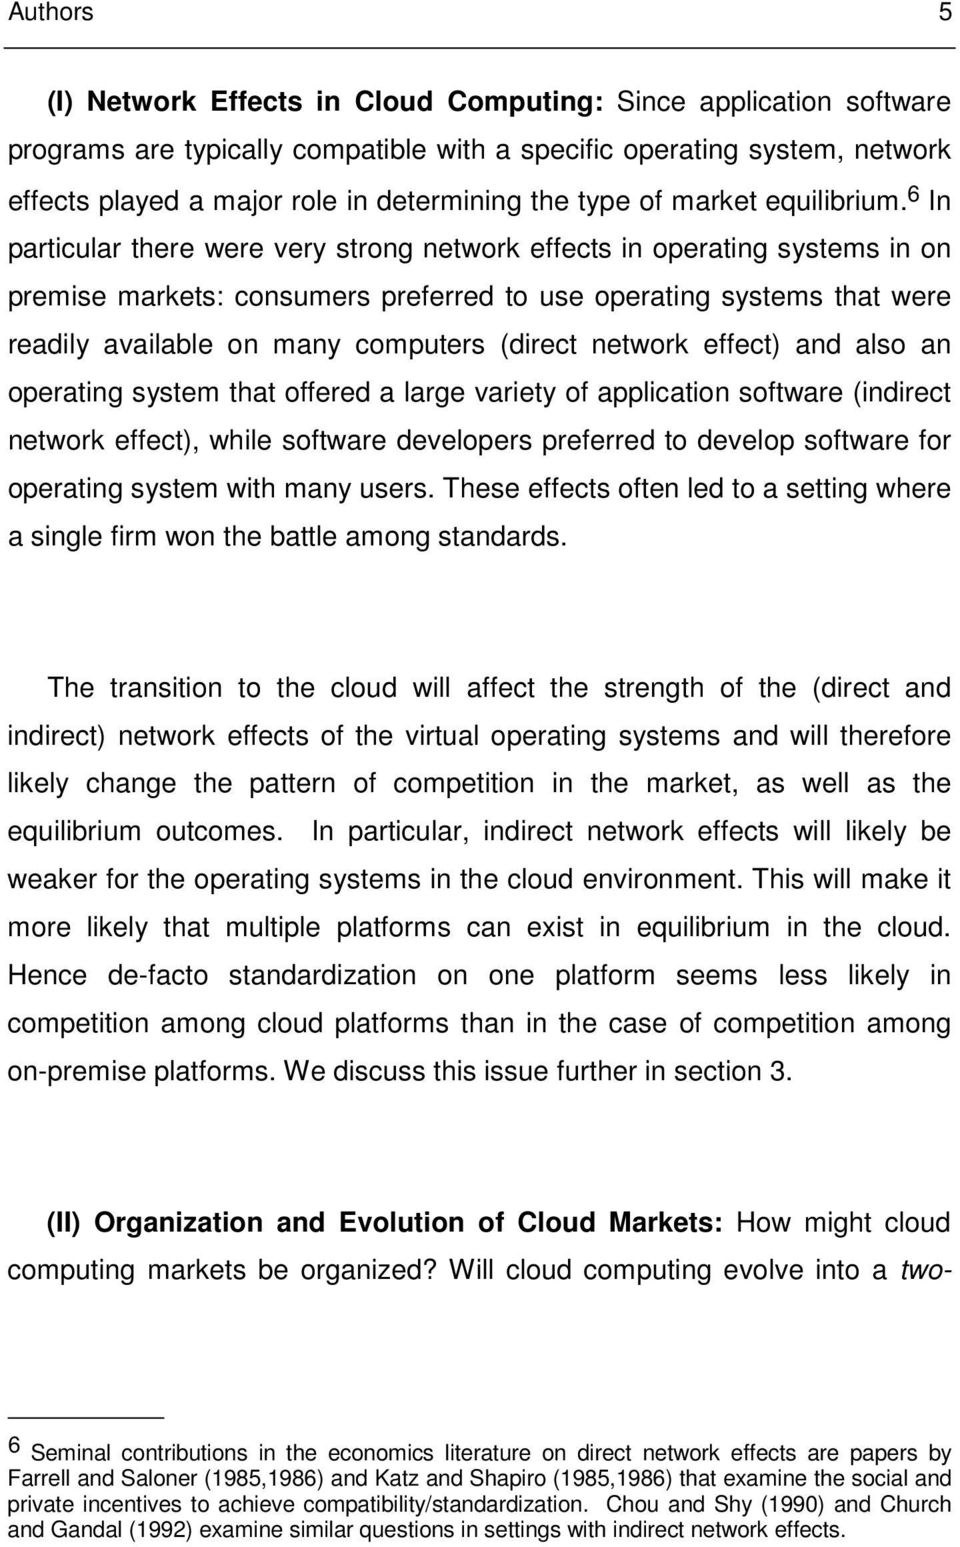 6 In particular there were very strong network effects in operating systems in on premise markets: consumers preferred to use operating systems that were readily available on many computers (direct